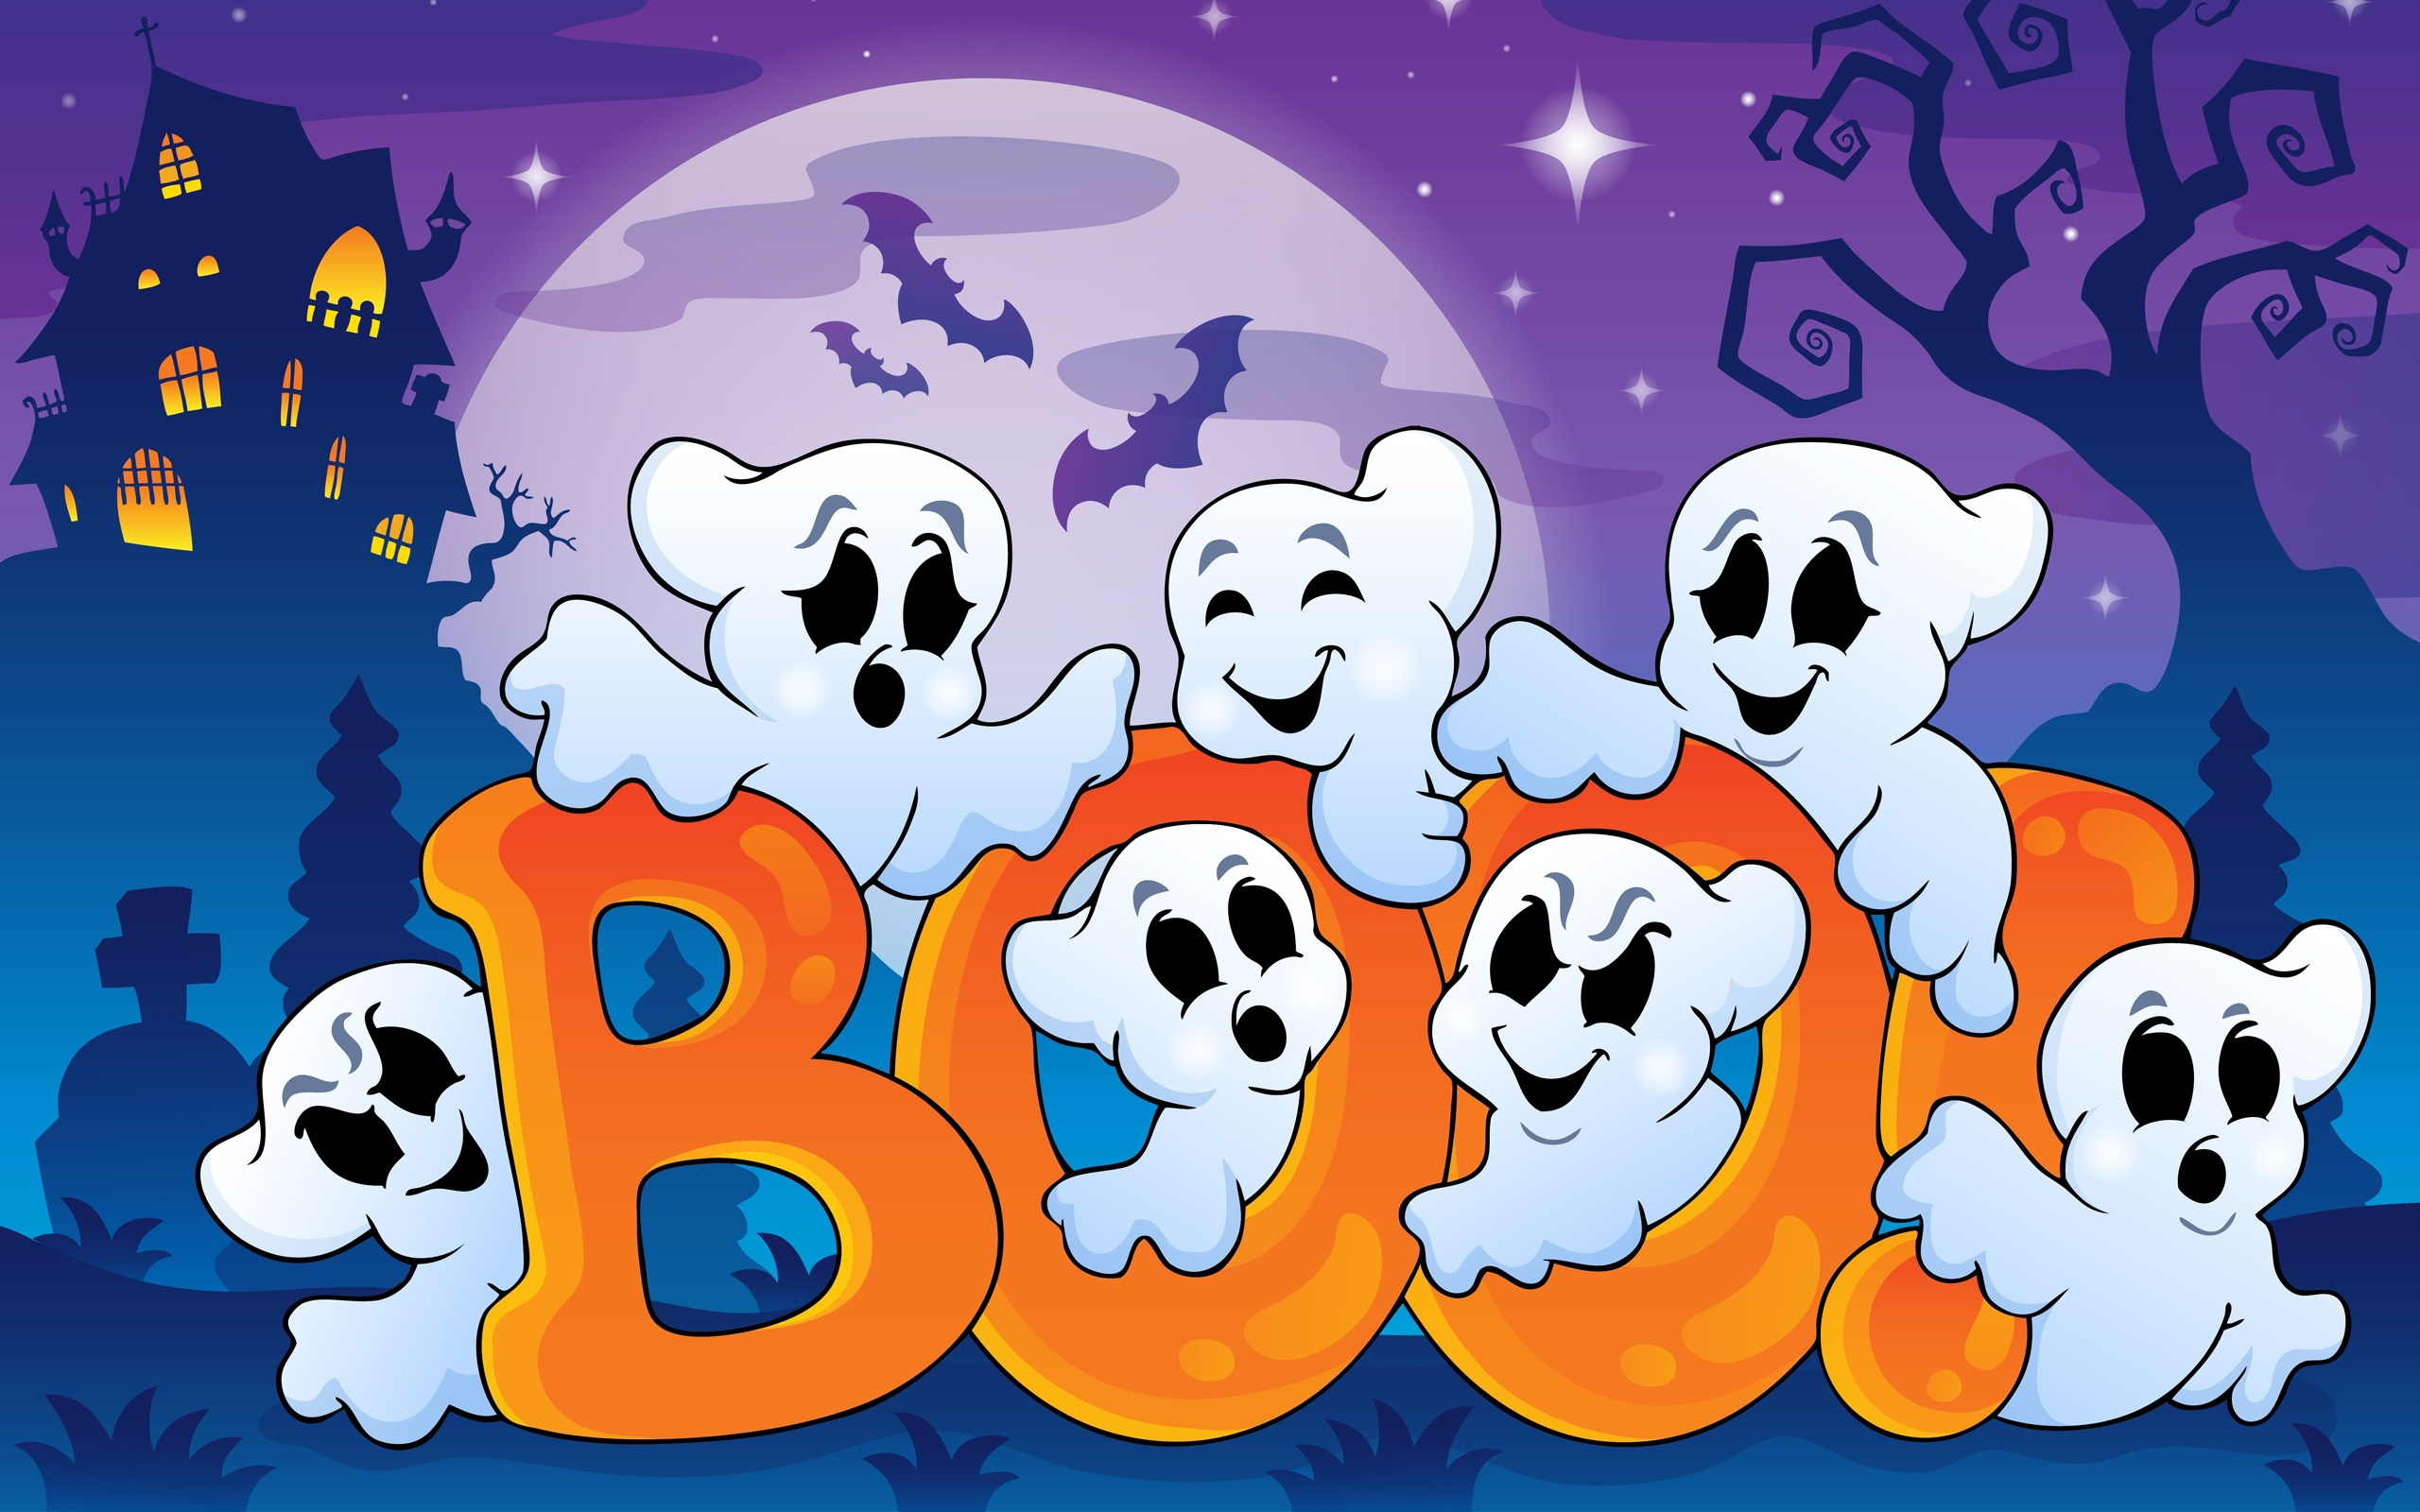 Fun Cute Kawaii Cartoon Ghost Saying Boo Room Decal Zazzle. Halloween,  Geister Lustig, Gruselig Haus, Voller Mond, Vektor Grafiken Hinter.